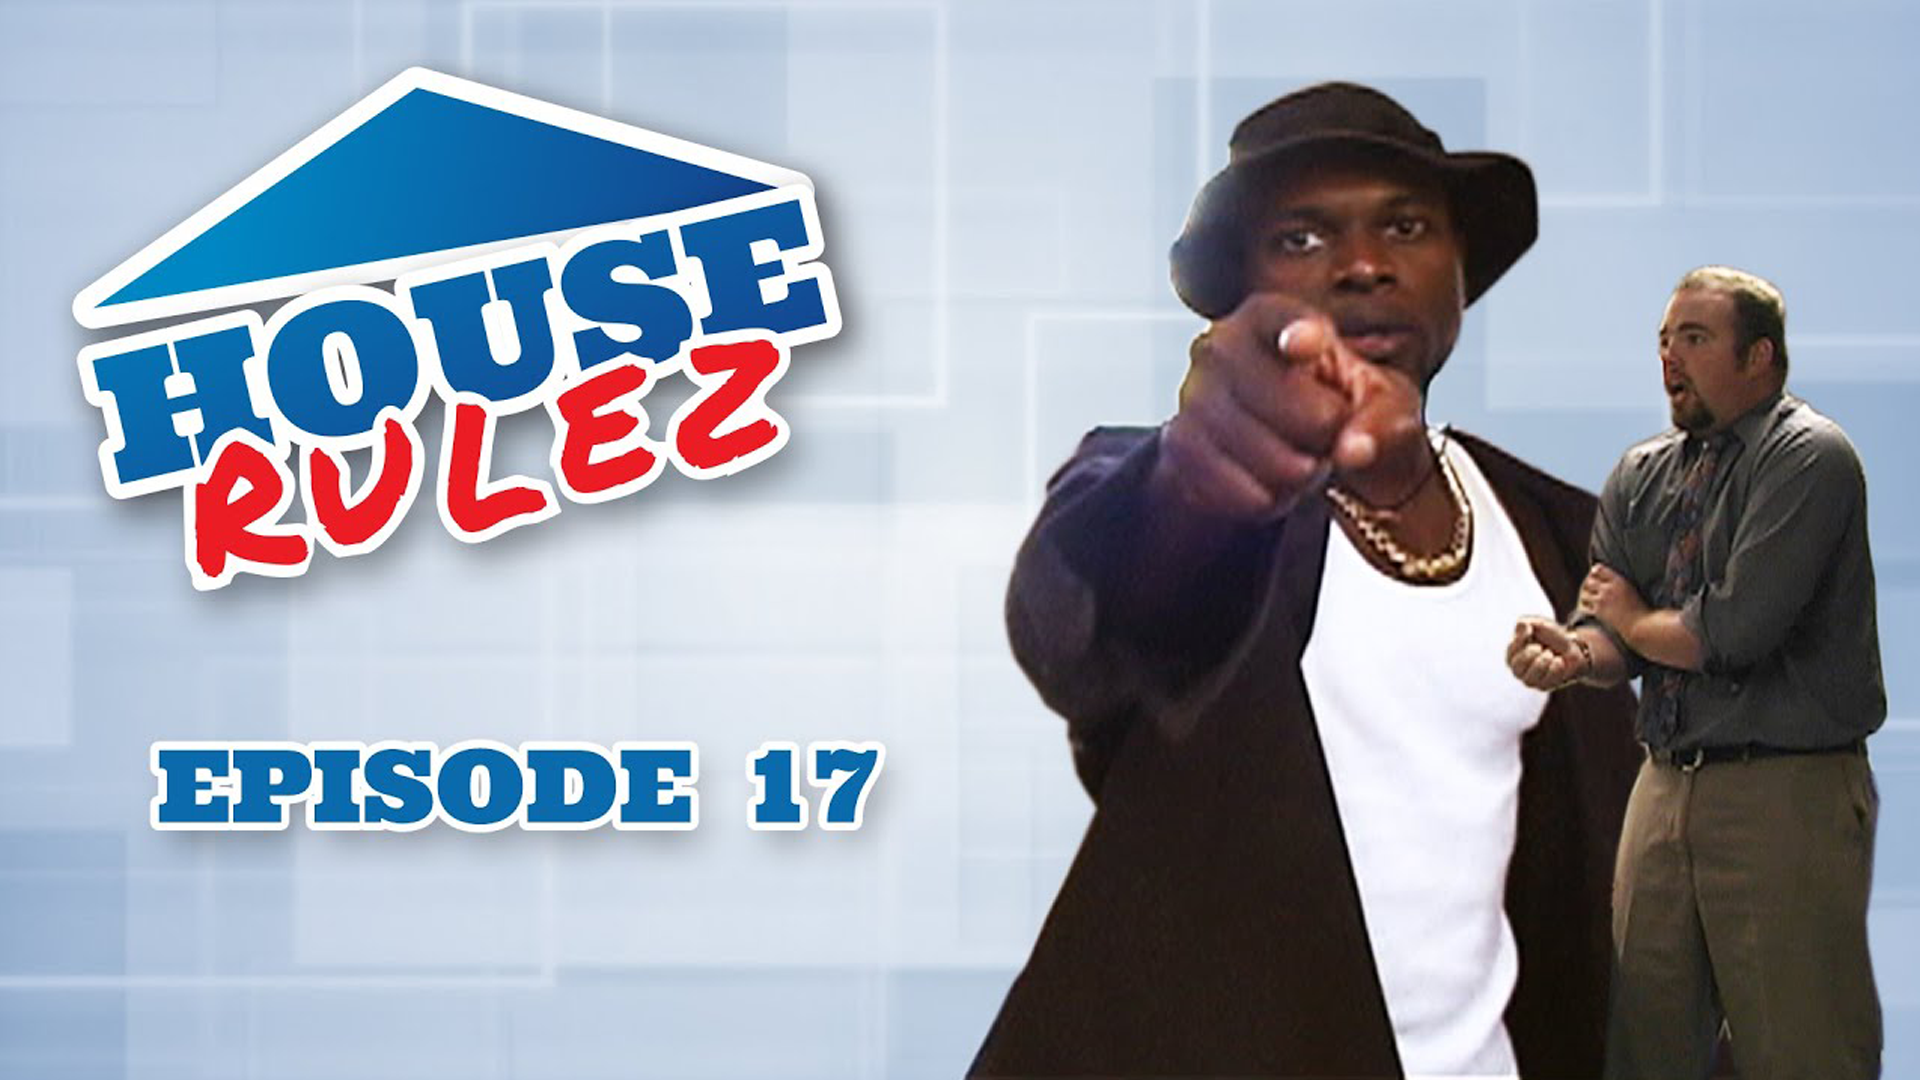 House Rulez Episode 17